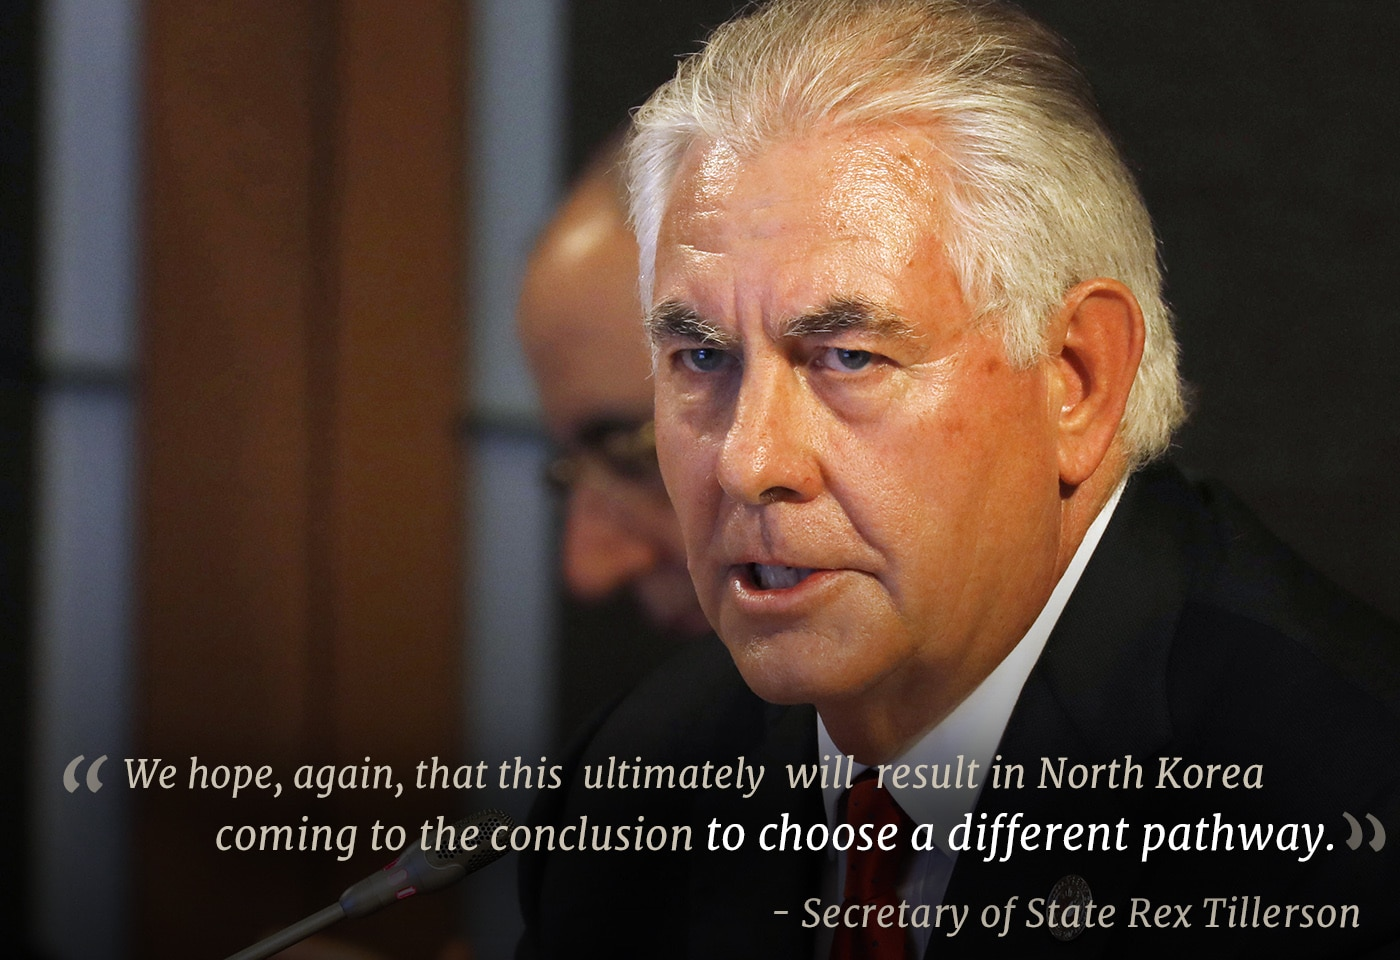 Closeup of Secretary of State Rex Tillerson with quote (© AP Images)